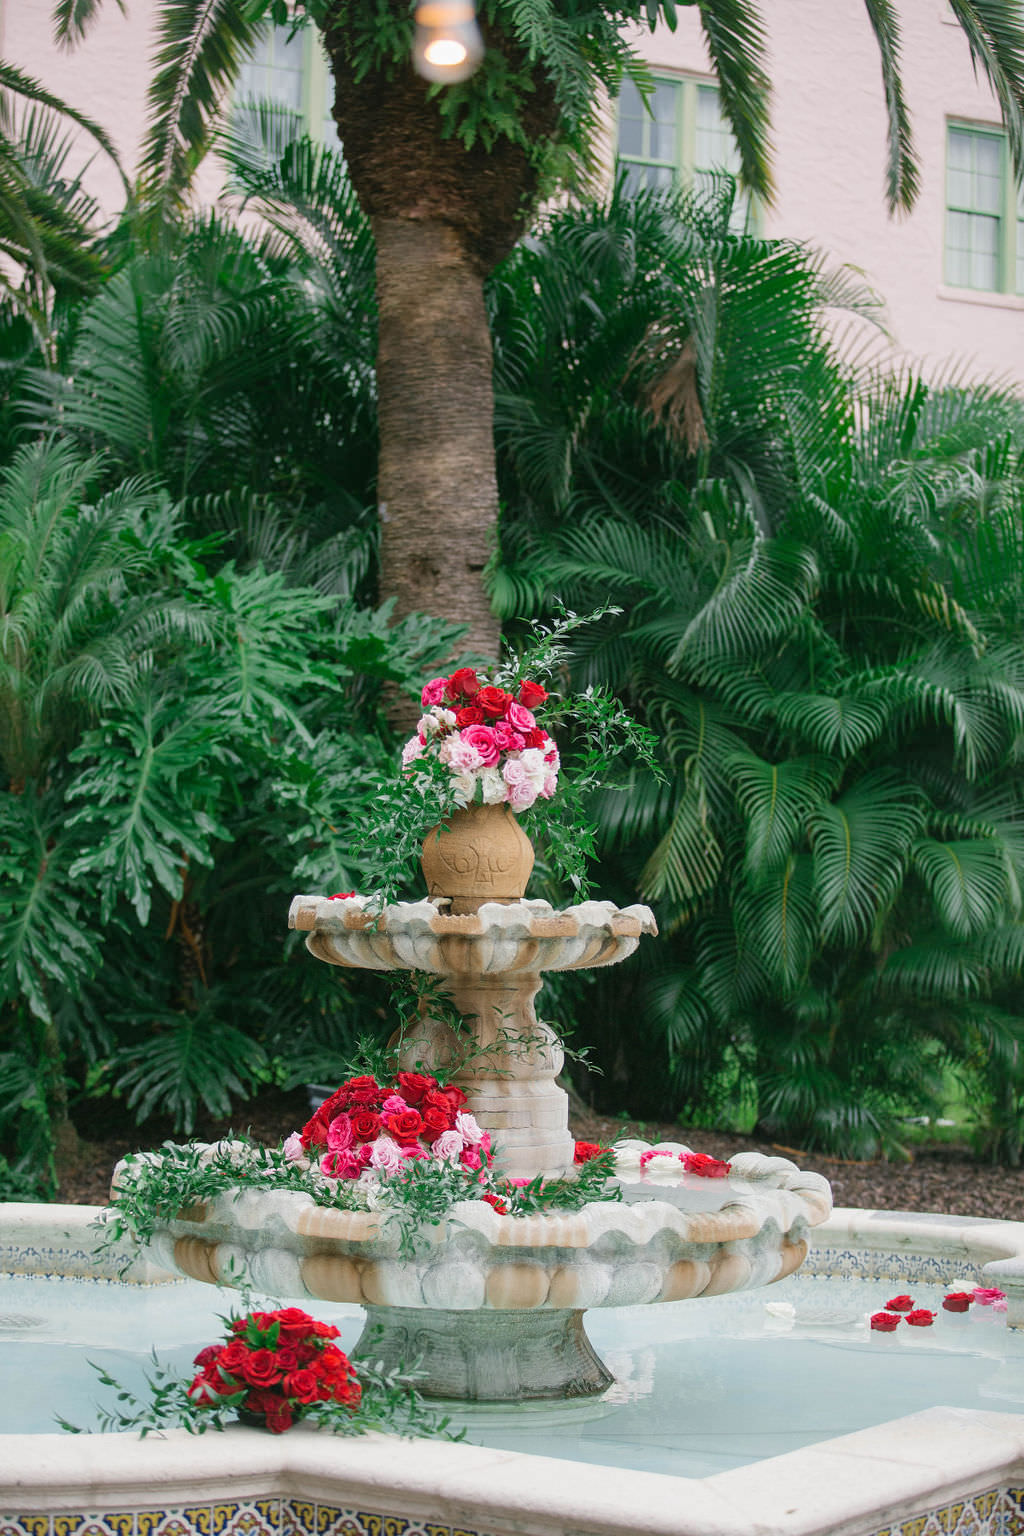 Romantic Wedding Ceremony Decor, Courtyard Water Fountain with Red and Blush Pink Roses   Wedding Florist Bruce Wayne Florals   Wedding Planner Parties A'la Carte